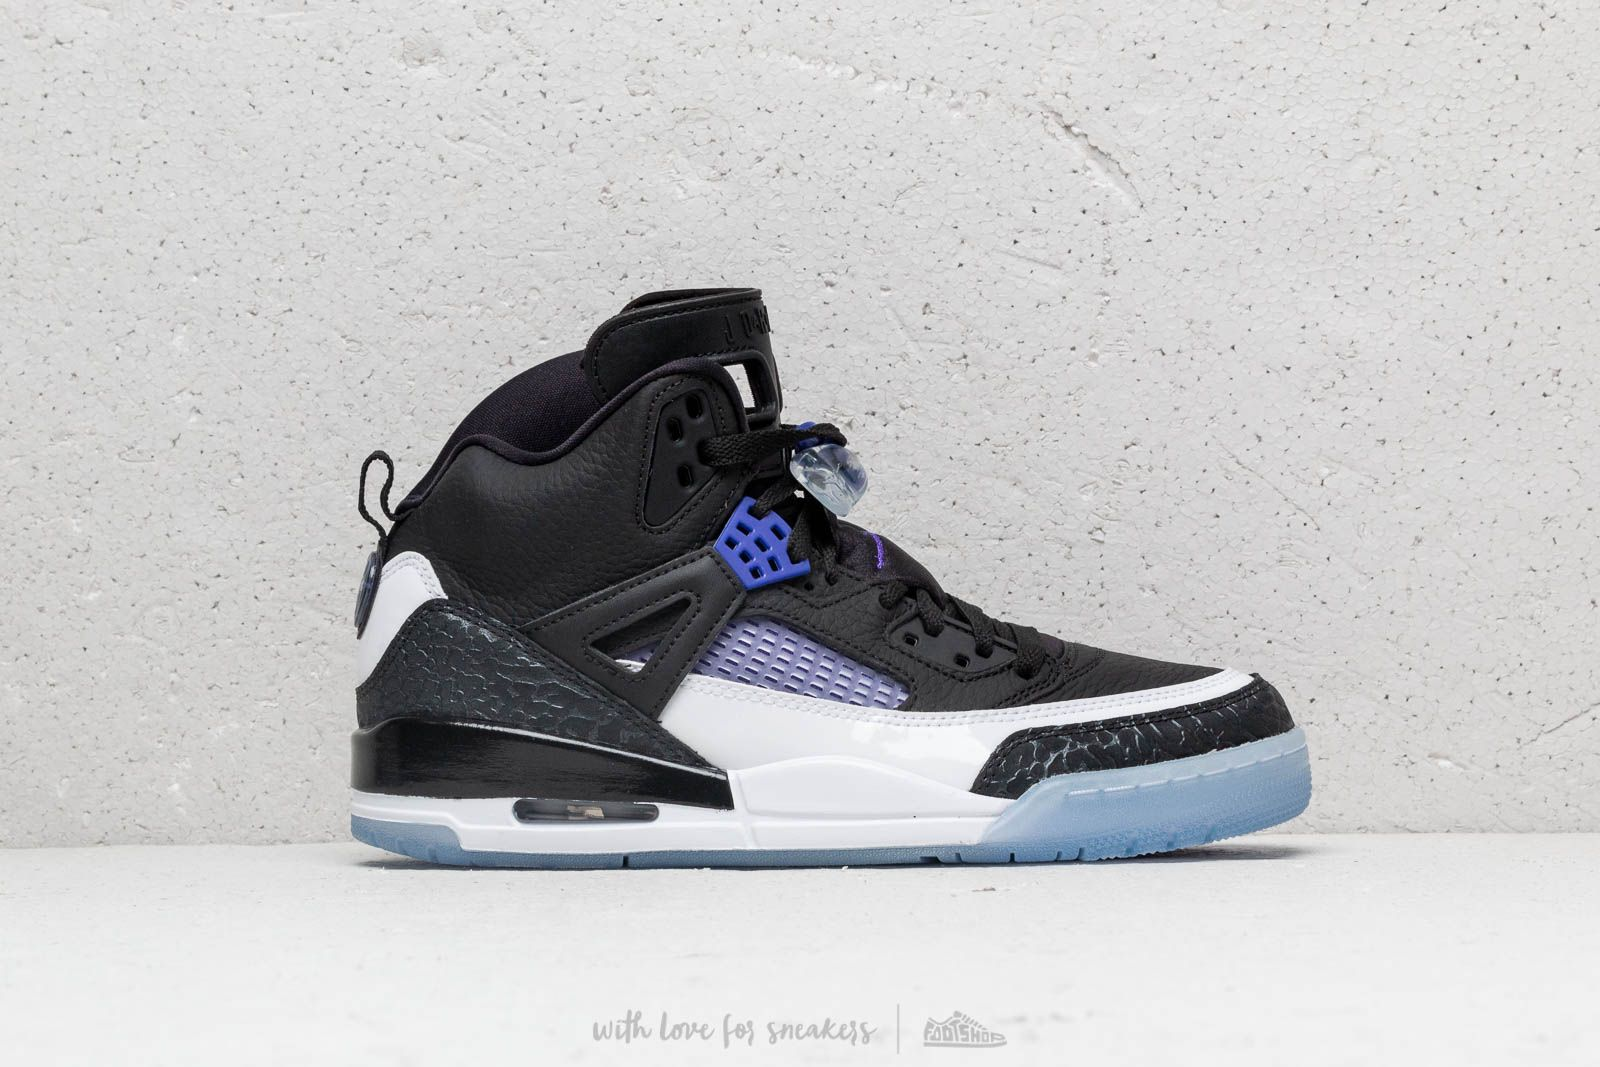 separation shoes 89eb7 46fb6 Jordan Spizike Black  Dark Concord-White at a great price  185 buy at  Footshop